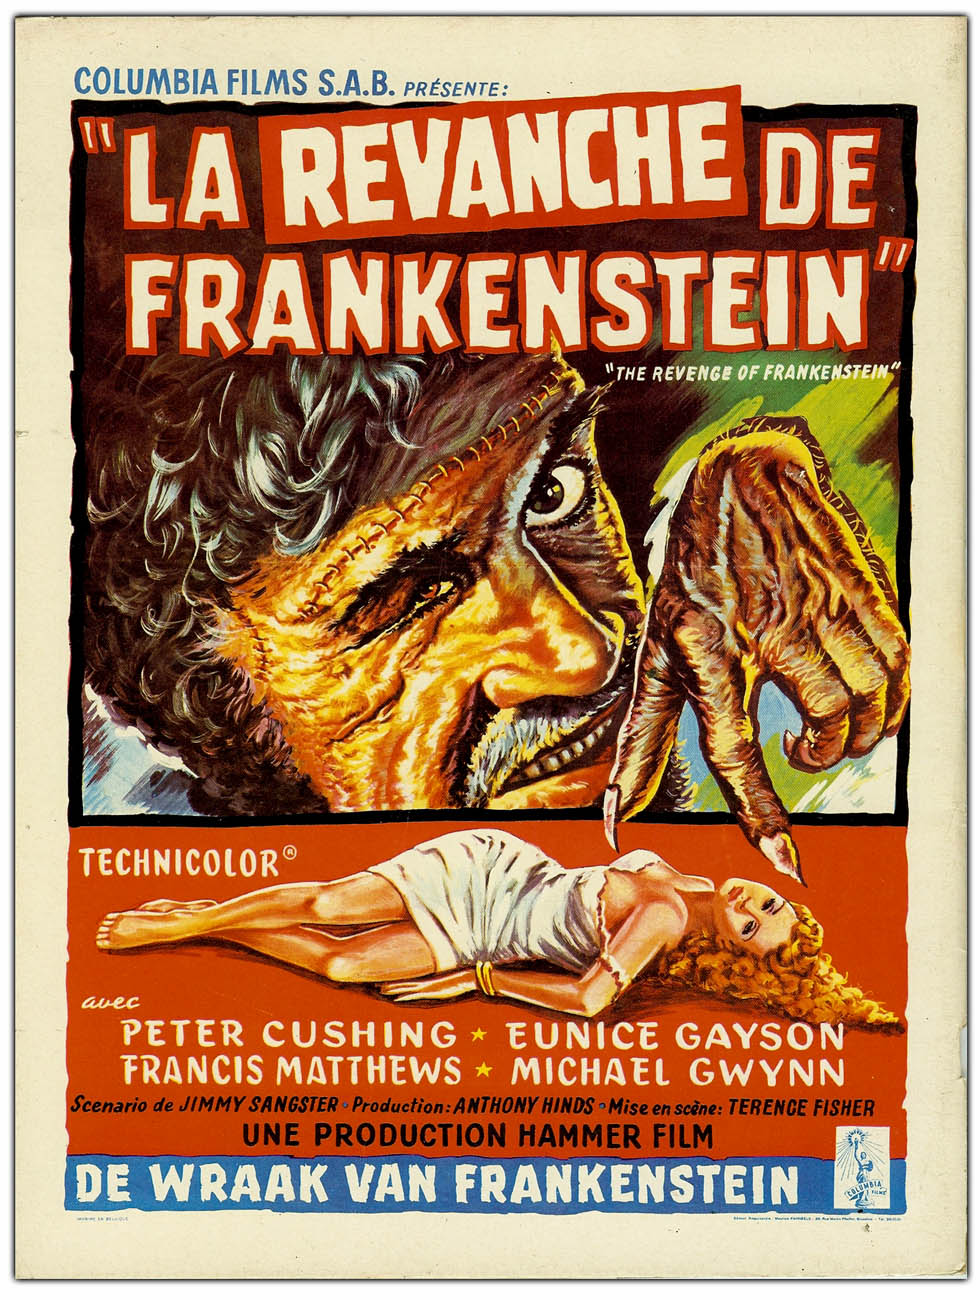 frankenstein essay on revenge The theme of revenge in mary shelley's frankenstein thesis revenge is one of the most prominent themes in mary shelley's frankenstein the concept is so deeply entrenched in the characters and plot that it is elevated to the status of an emotion or action.